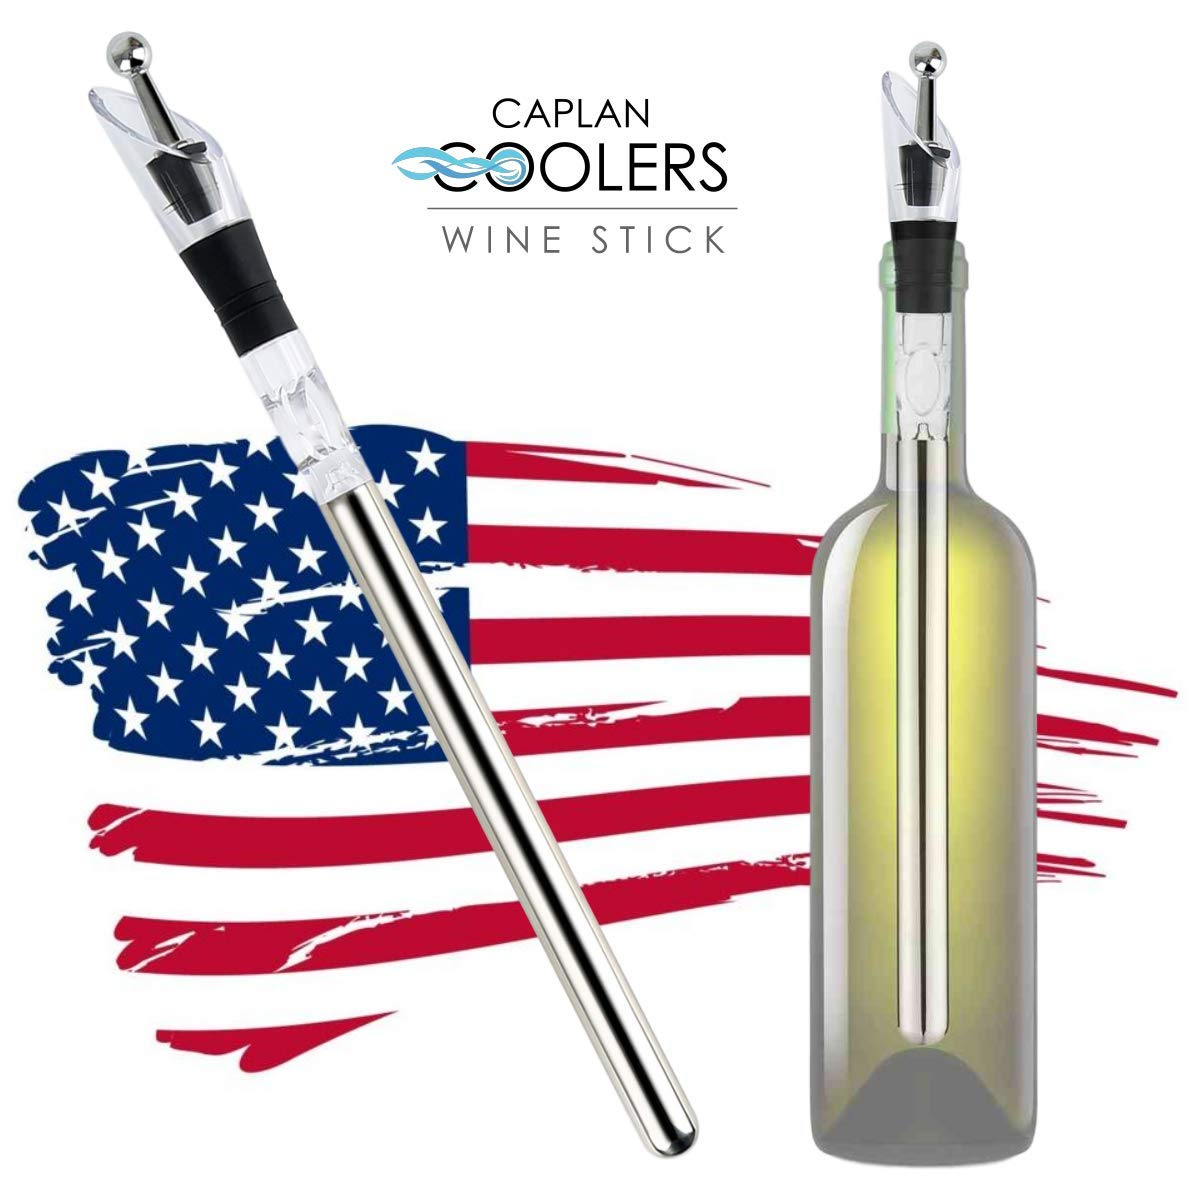 Caplan Coolers: Wine Bottle Chiller Cooling Stick (with Pourer, Aerator, and Bottle Stopper) by Caplan Coolers (Image #1)